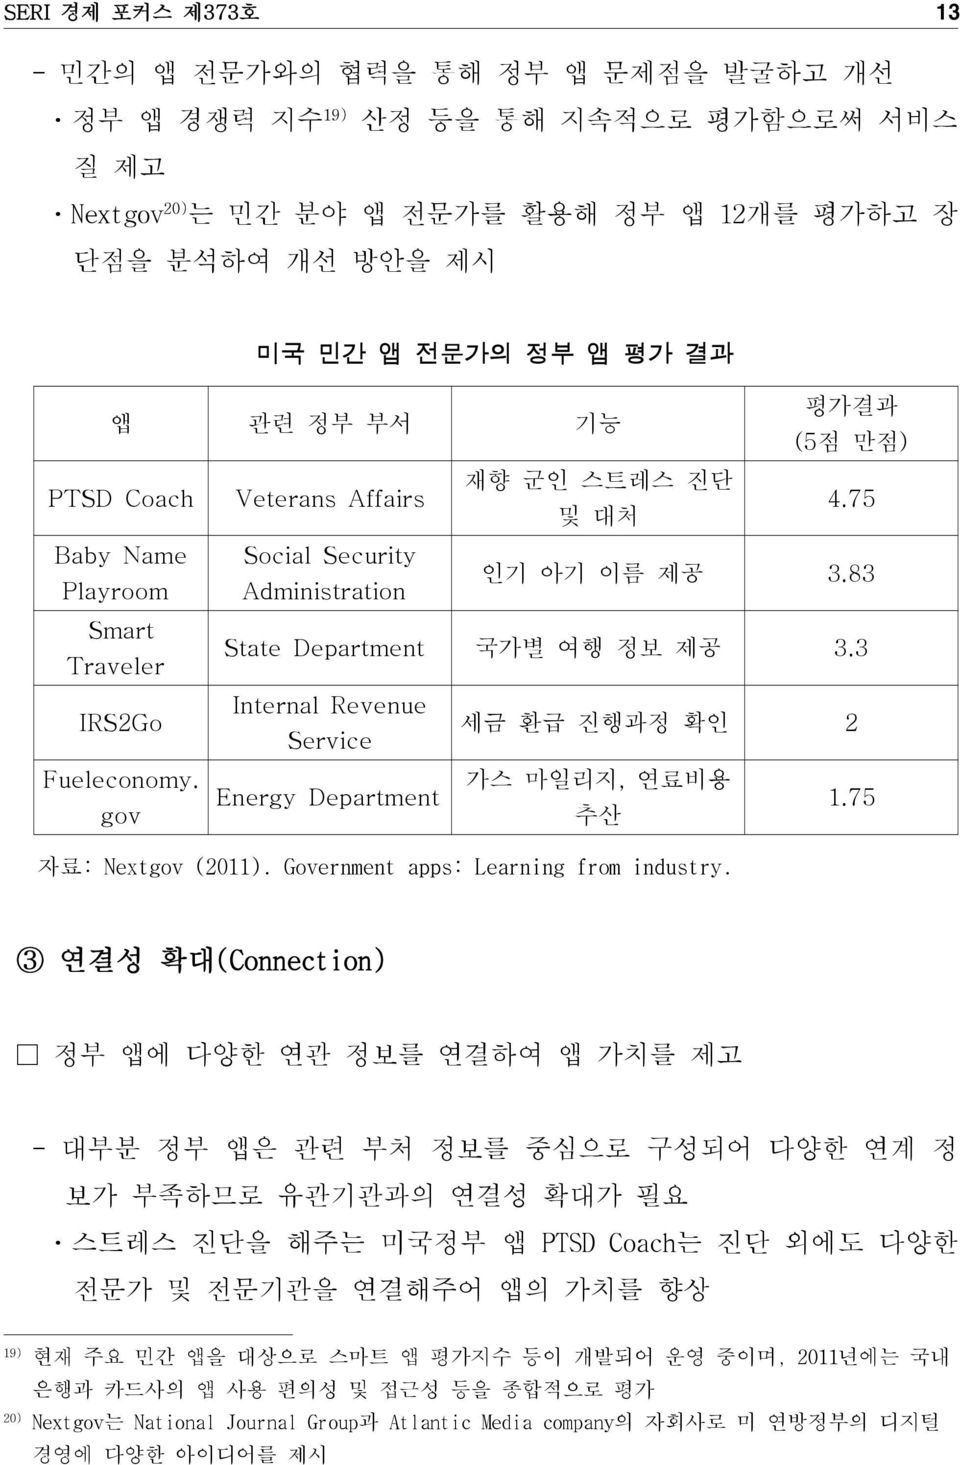 3 IRS2Go Internal Revenue Service 세금 환급 진행과정 확인 2 Fueleconomy. 가스 마일리지, 연료비용 Energy Department gov 추산 1.75 자료: Nextgov (2011). Government apps: Learning from industry.